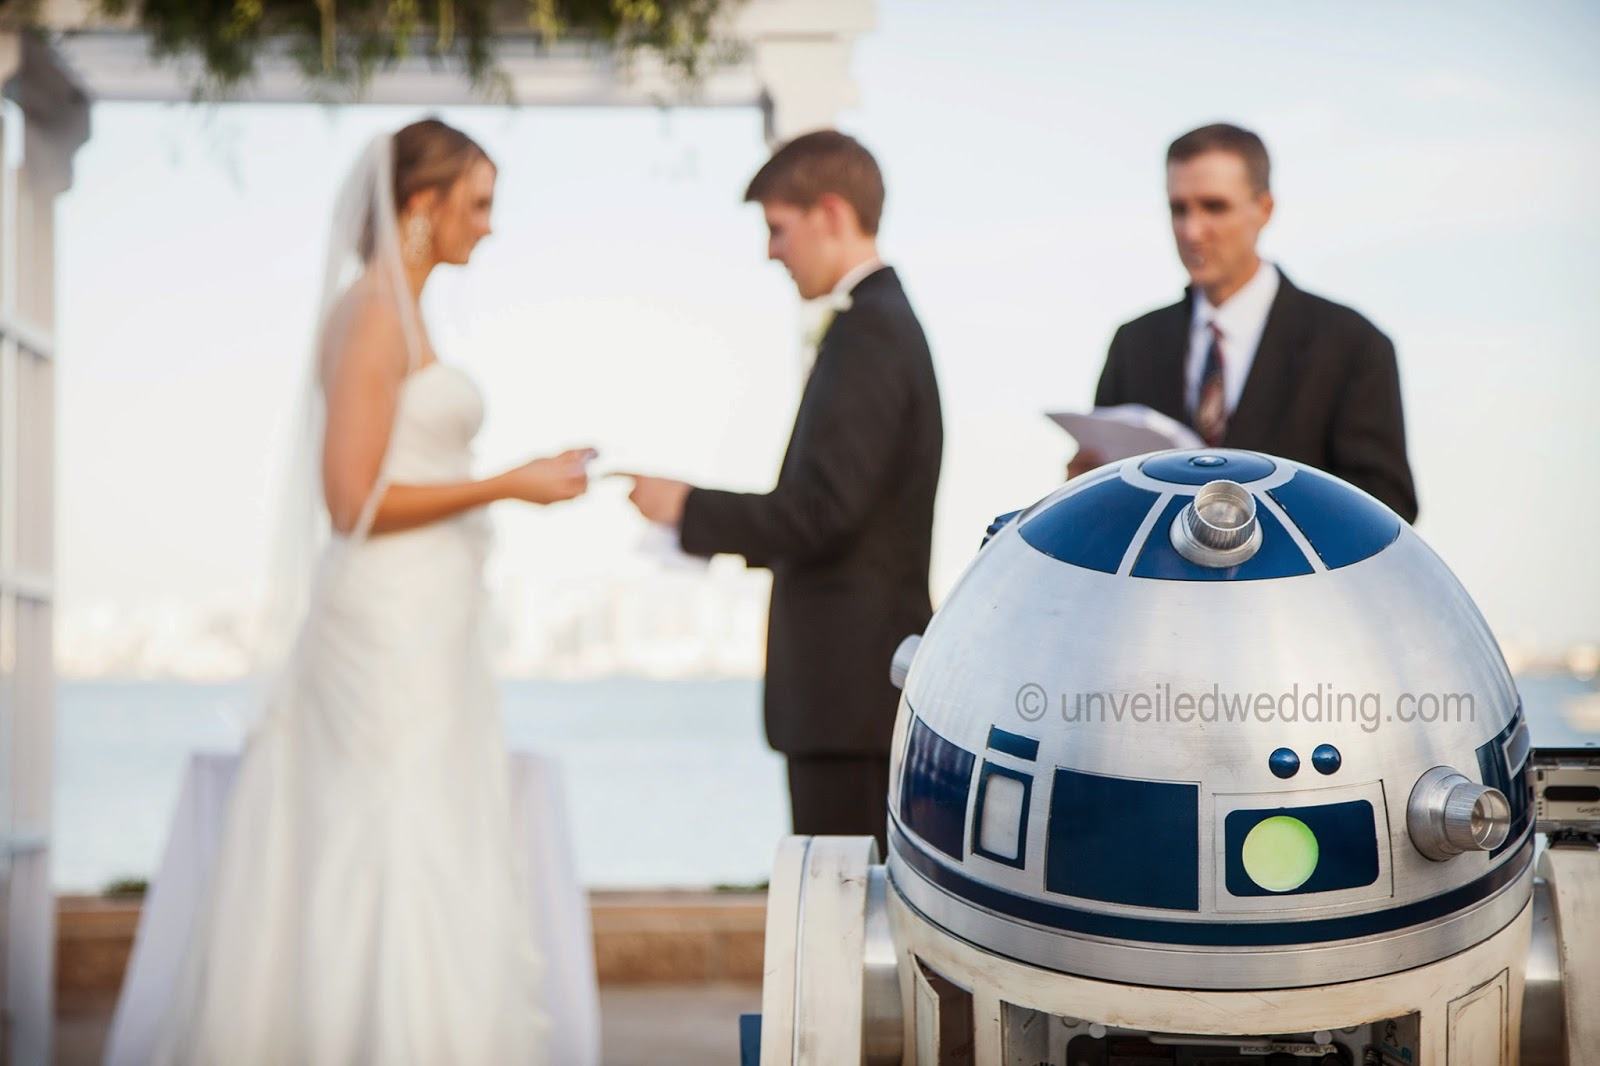 Recommended Vendors For a Star Wars Wedding in Malaysia